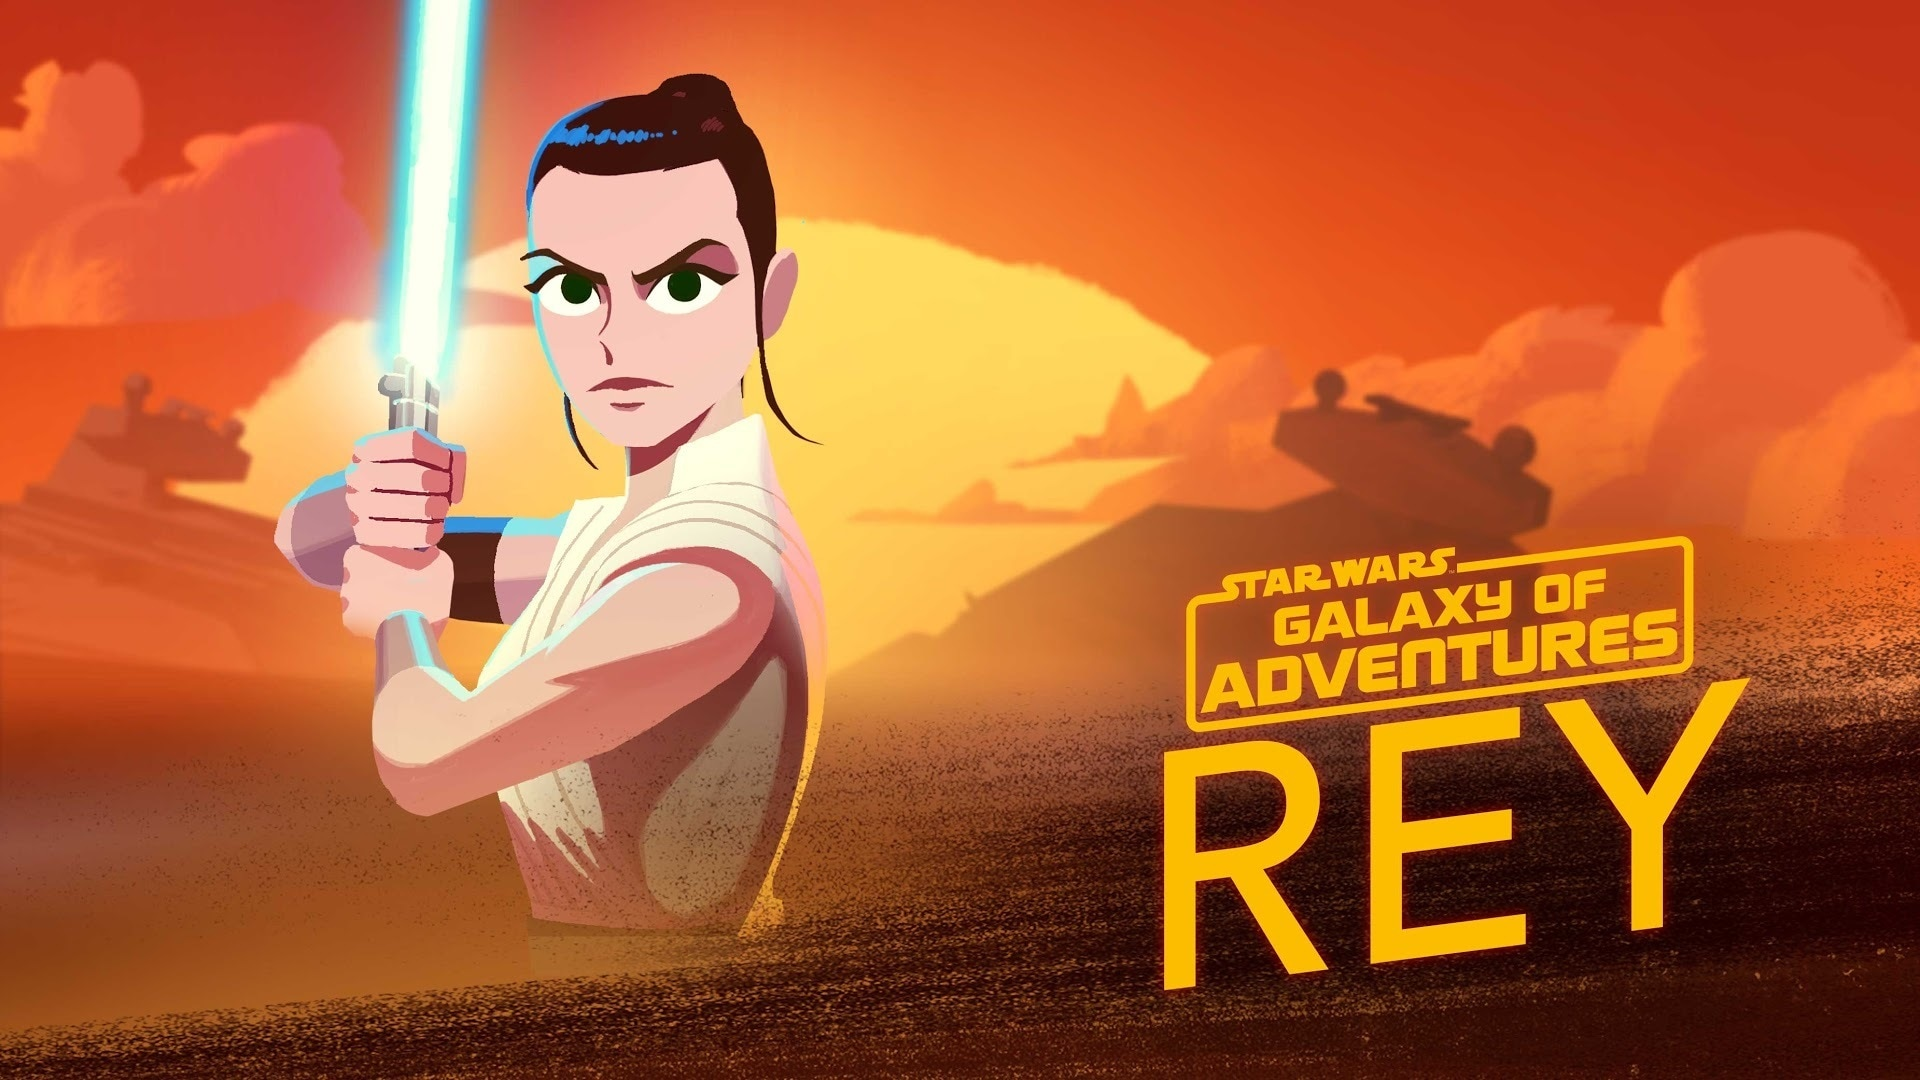 The Force Calls to Rey | Star Wars Galaxy of Adventures